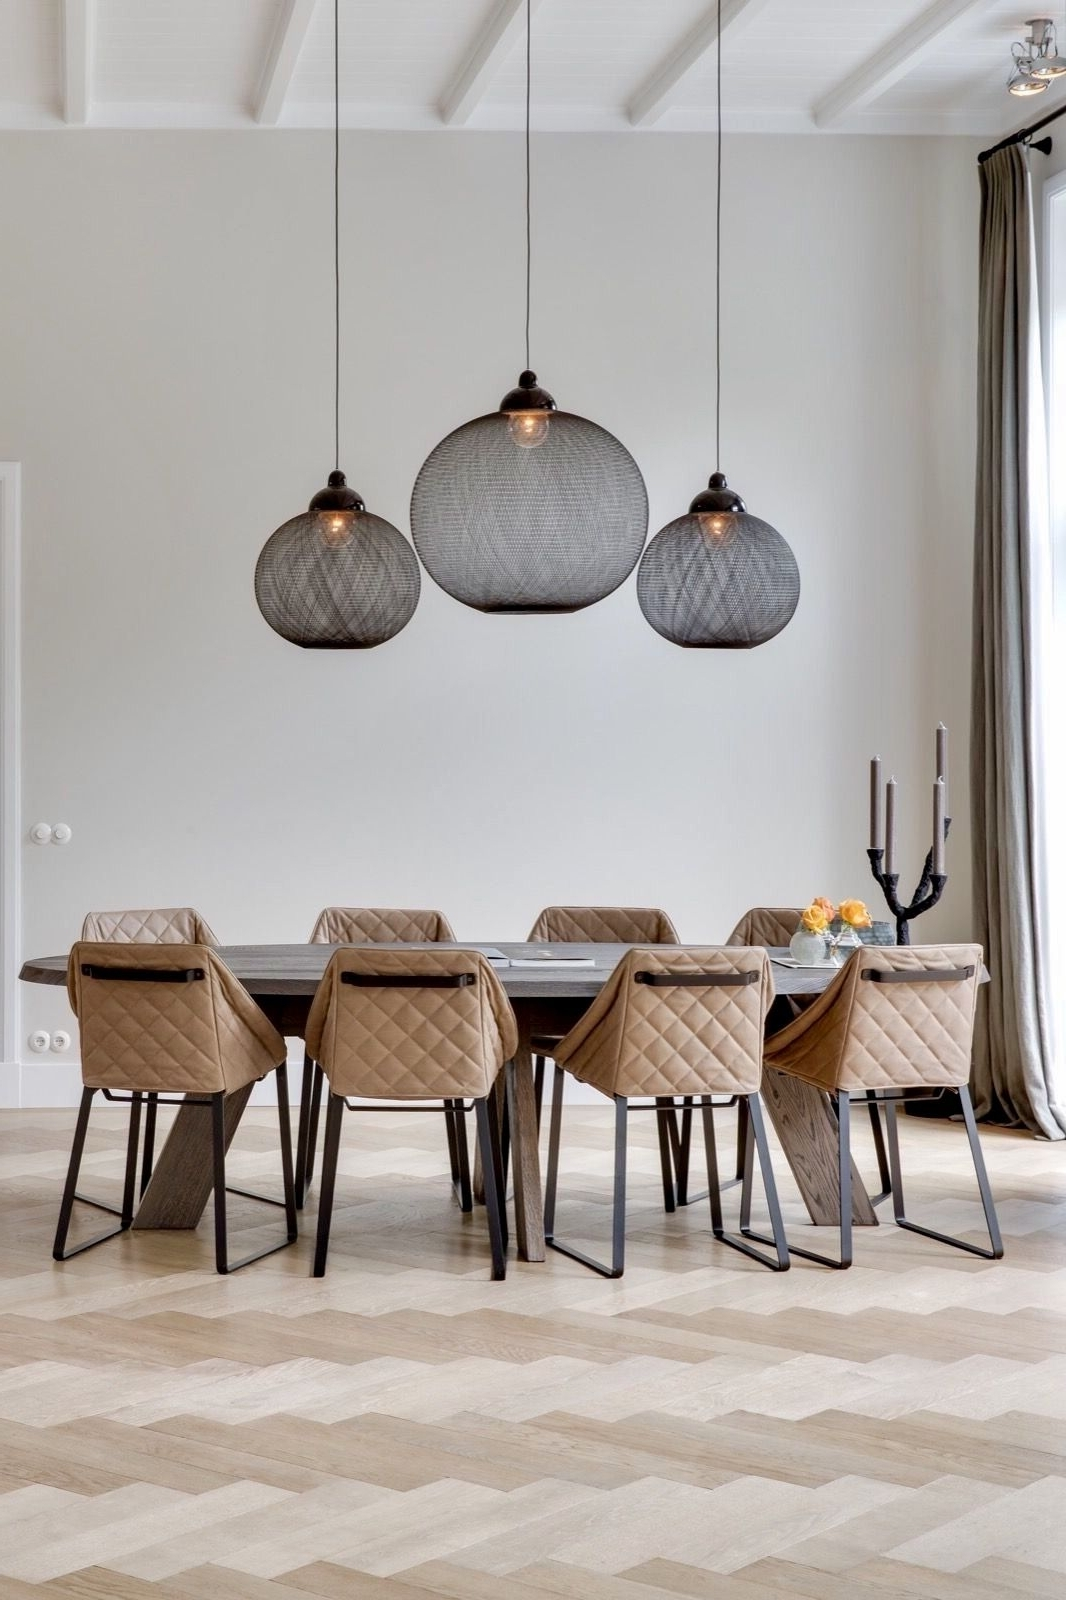 22 Best Ideas Of Pendant Lighting For Kitchen, Dining Room And For Most Popular Lamp Over Dining Tables (View 2 of 25)